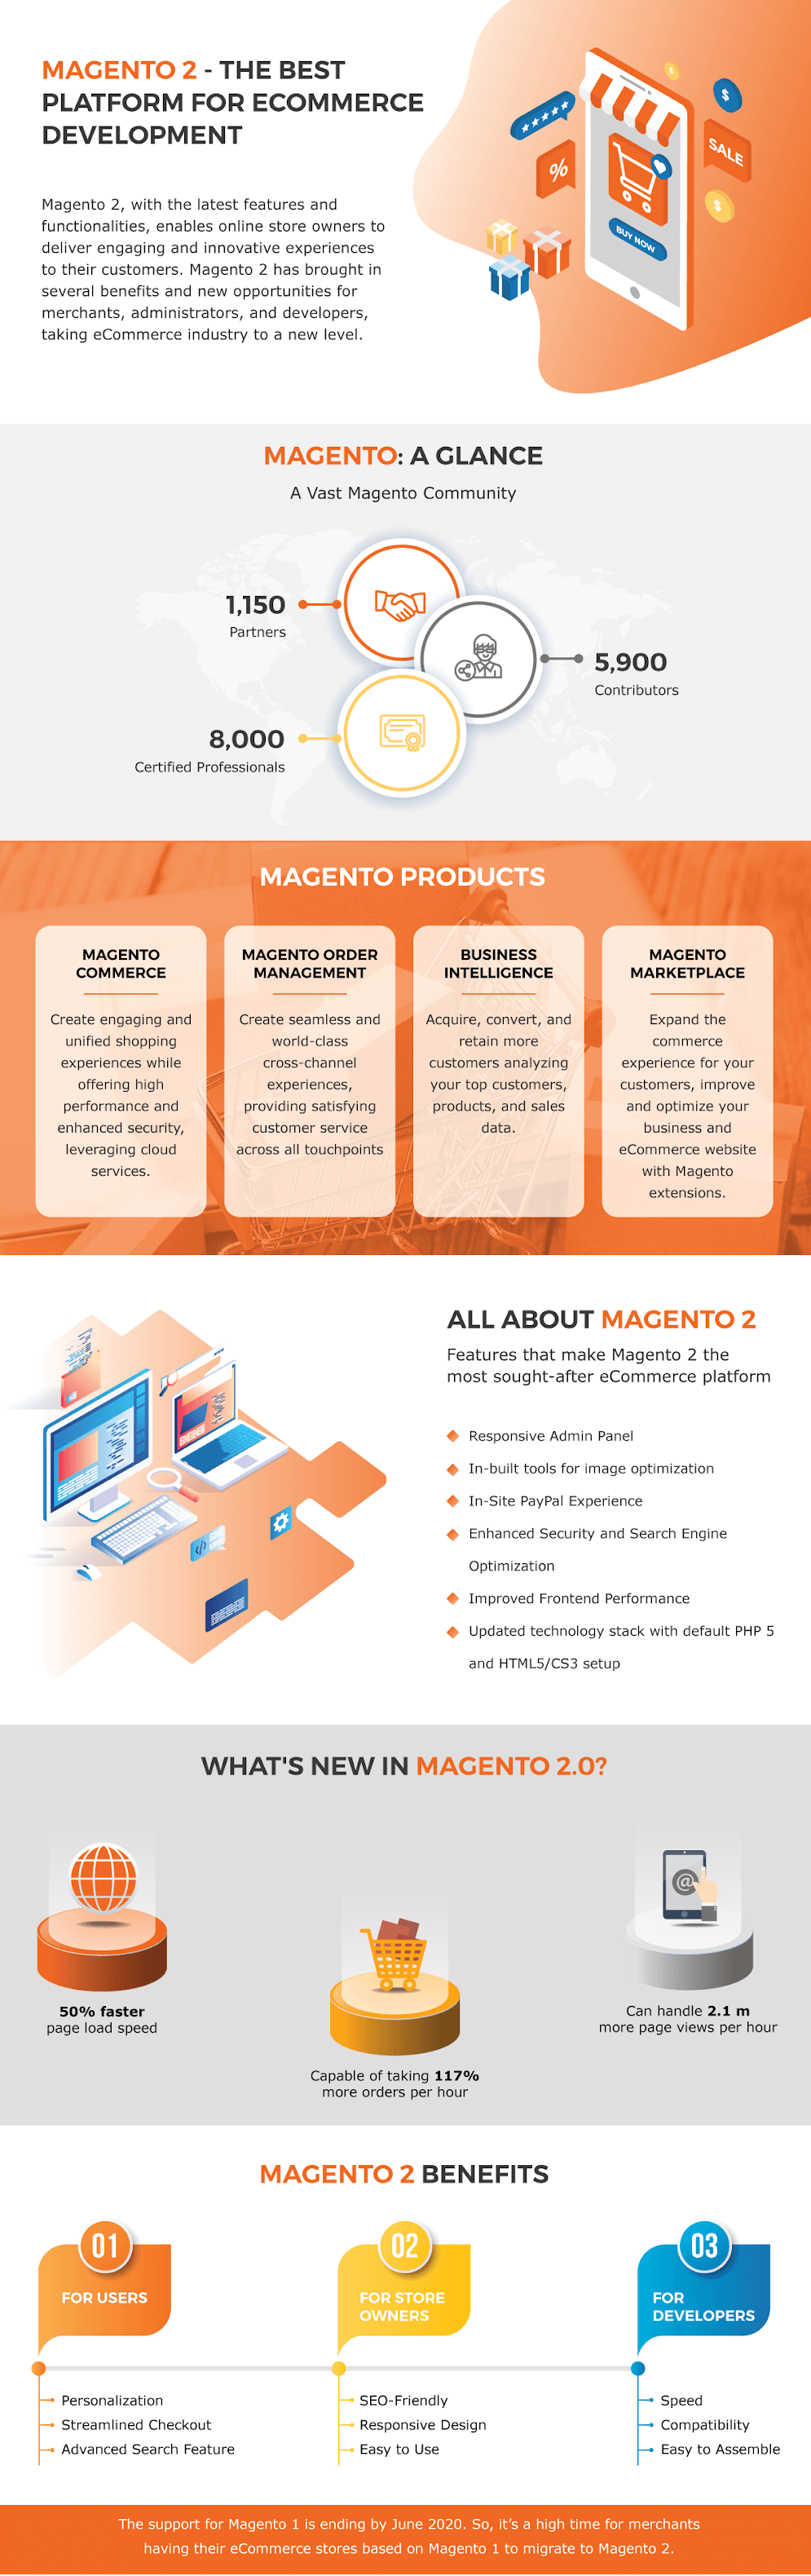 Why Choose Magento 2 for Ecommerce Development in 2019